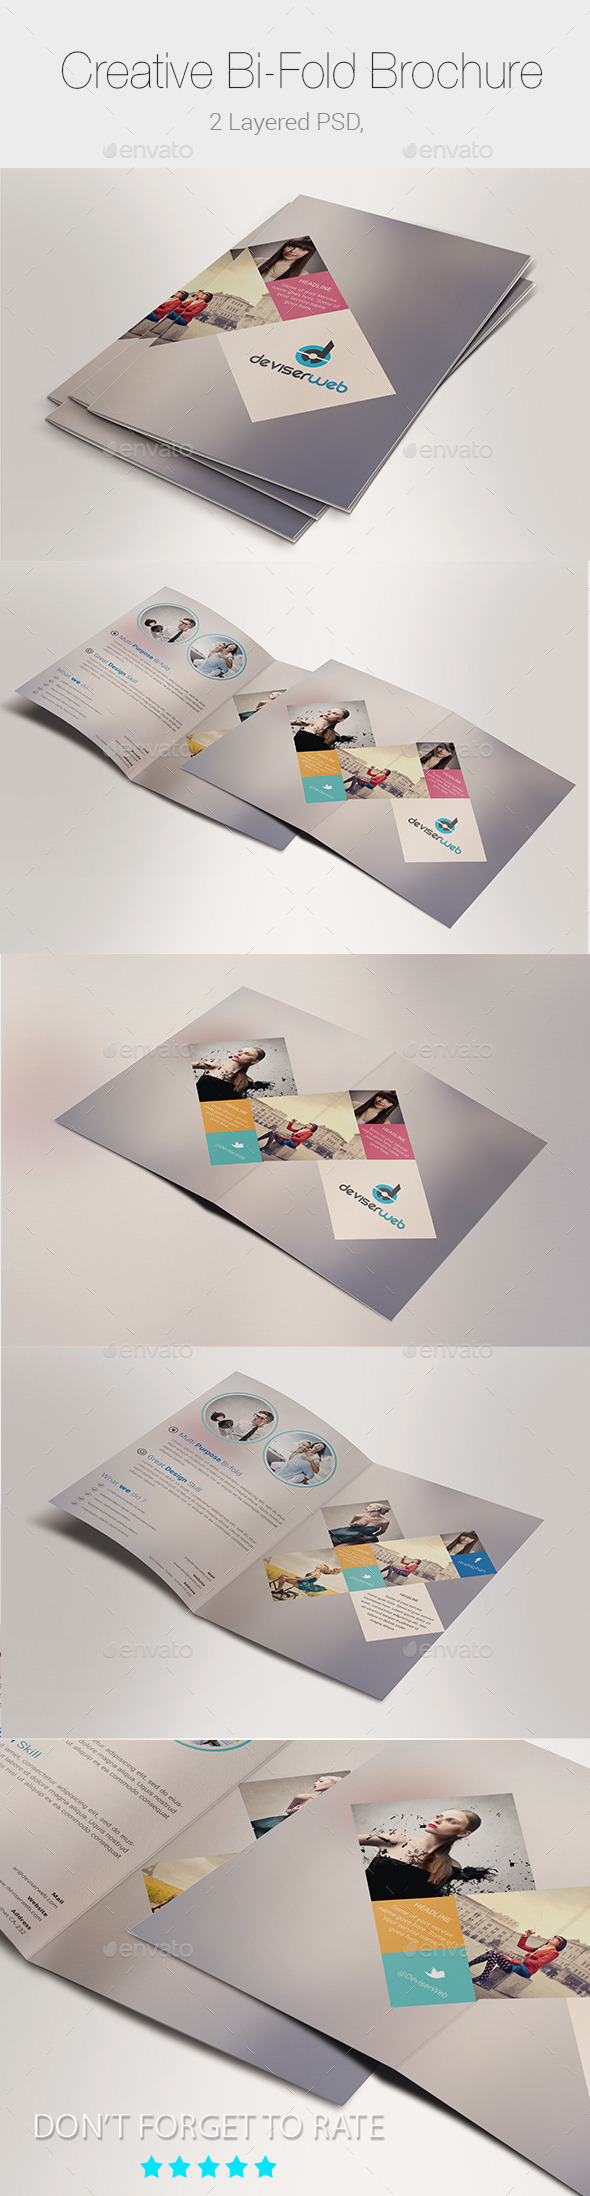 GraphicRiver Minimal Creative Bi-fold Brochure Templates 9635339